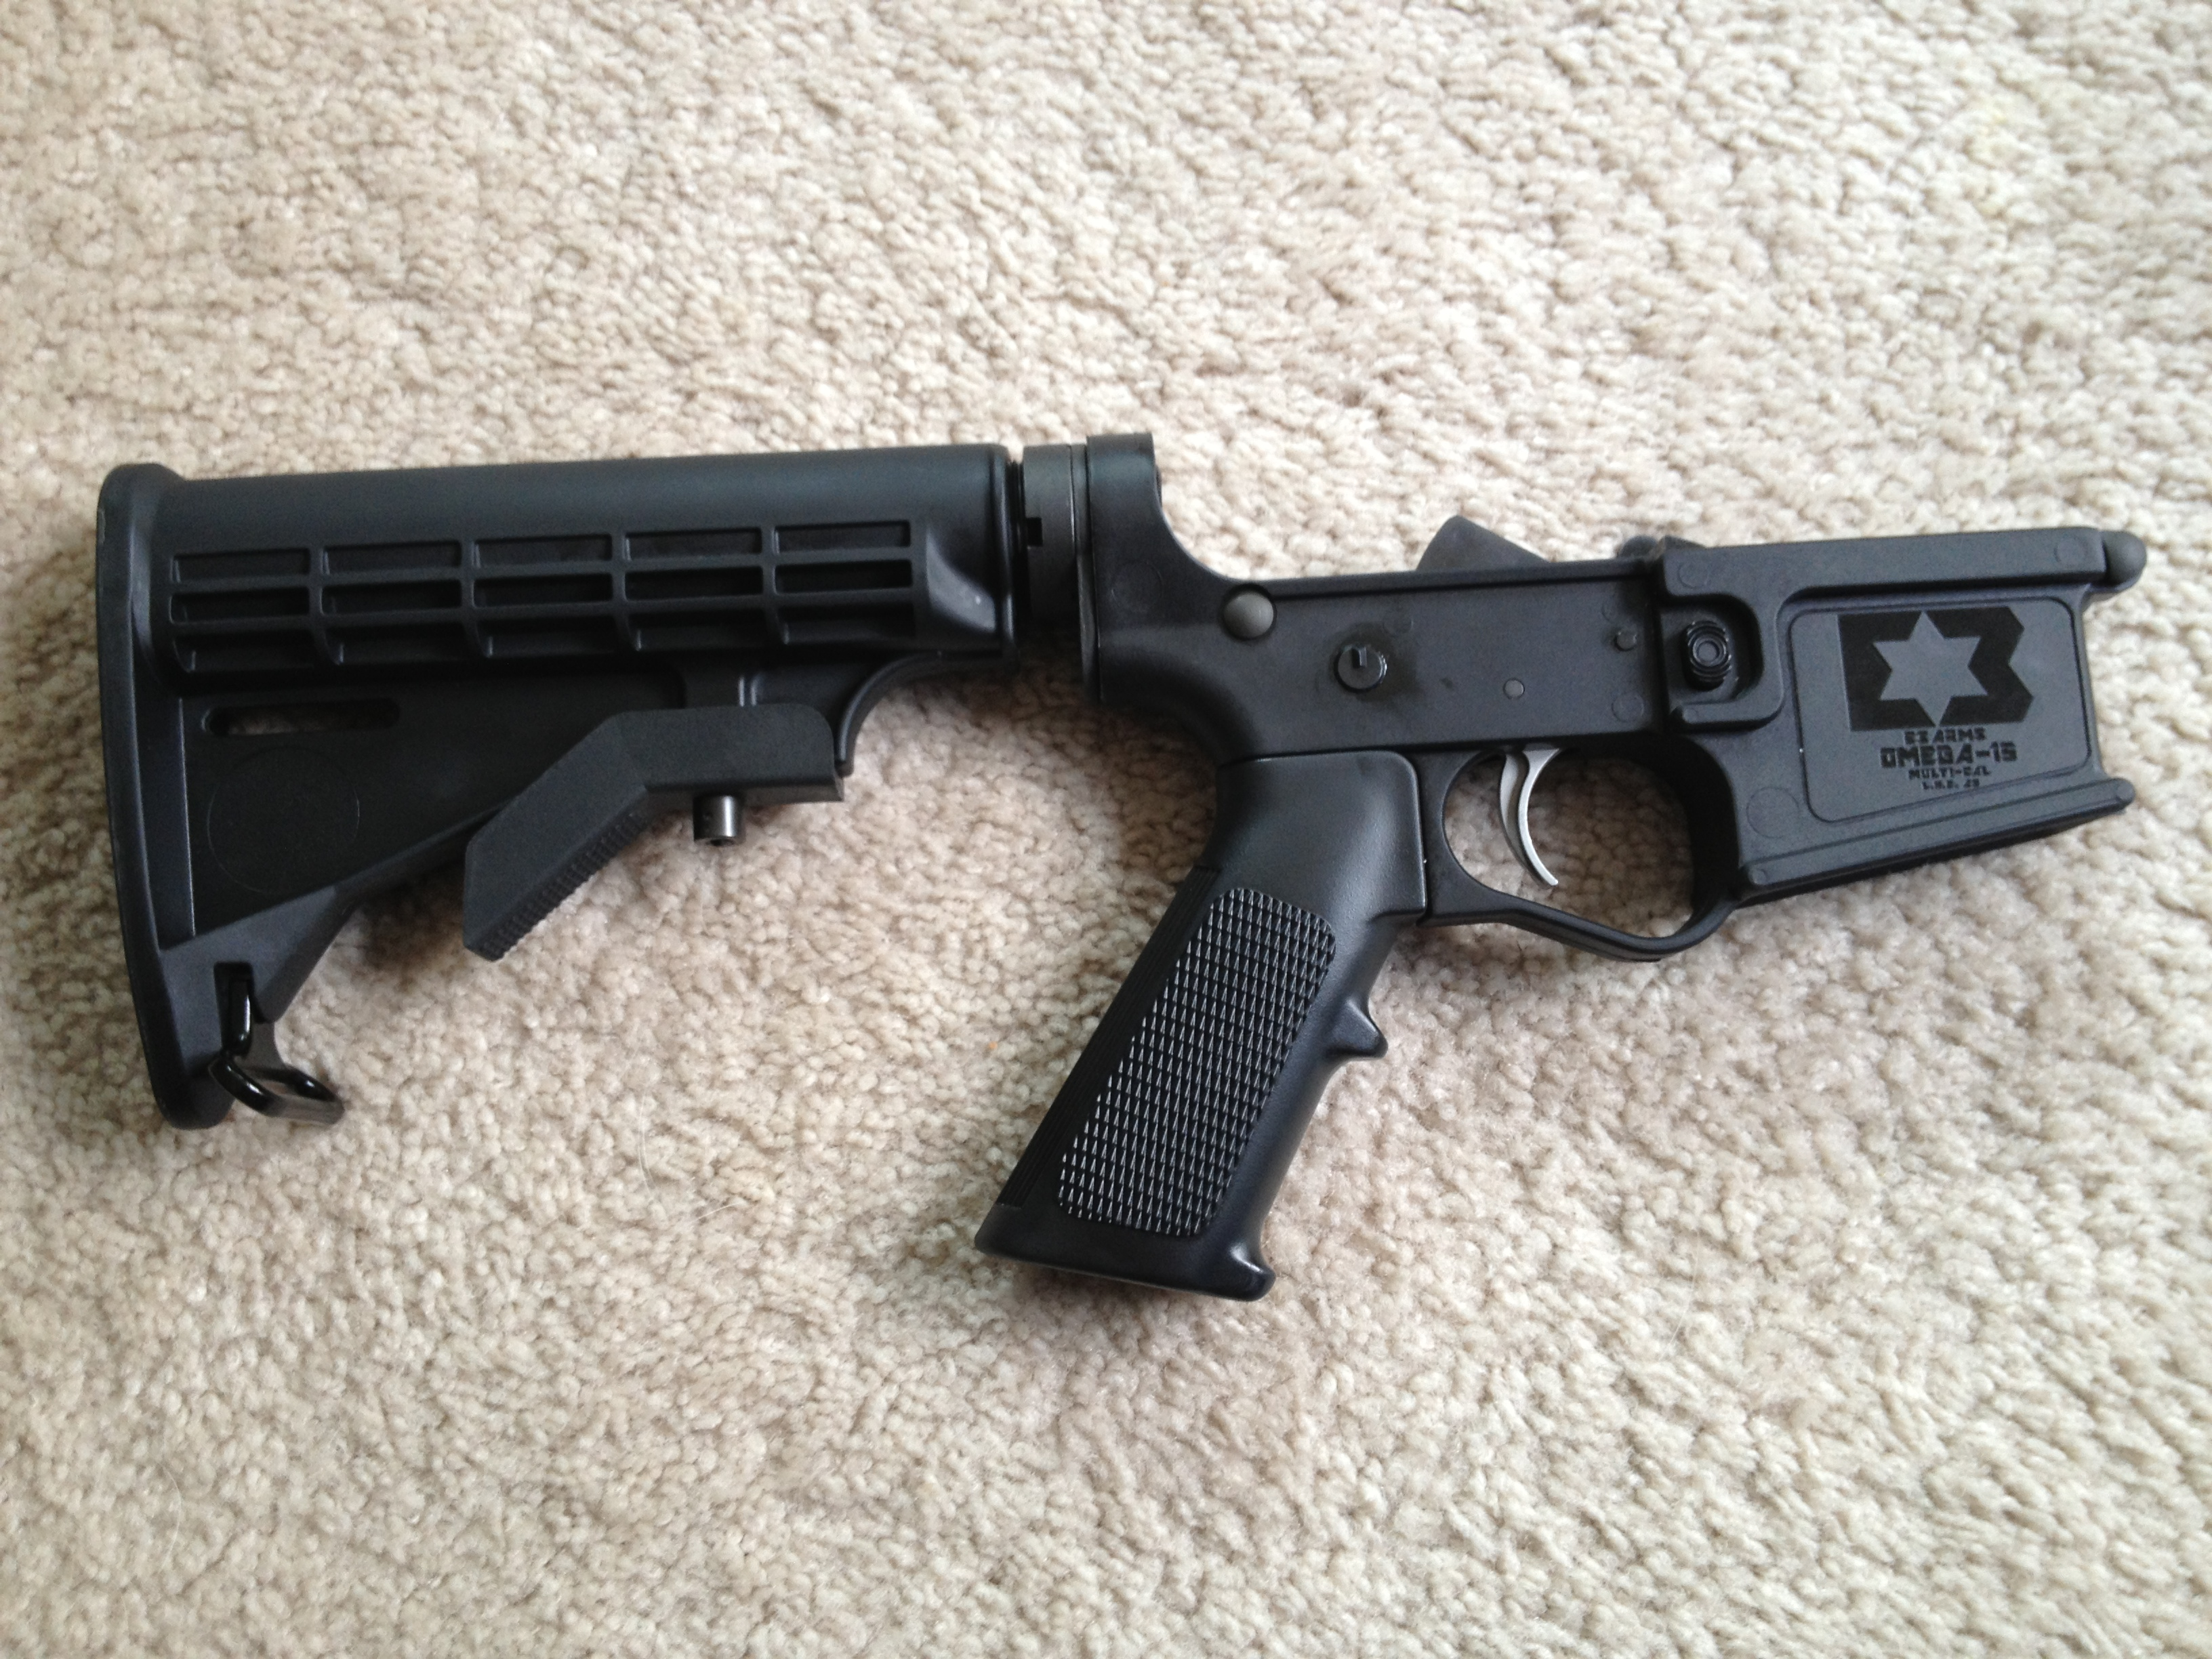 E3 Arms Omega-15 Polymer Lower First Impressions Review